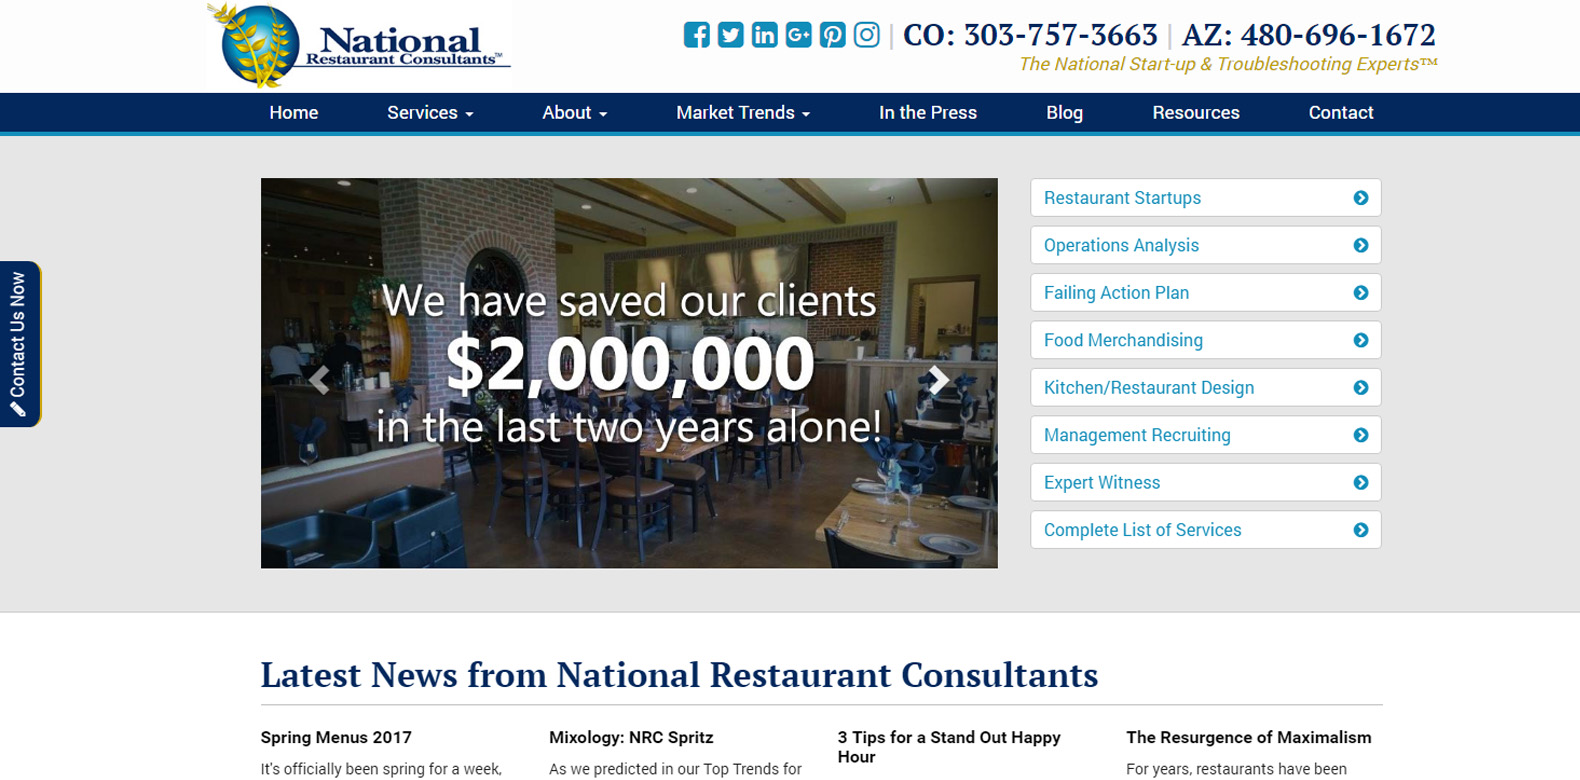 New Upgrade Launched: National Restaurant Consultants